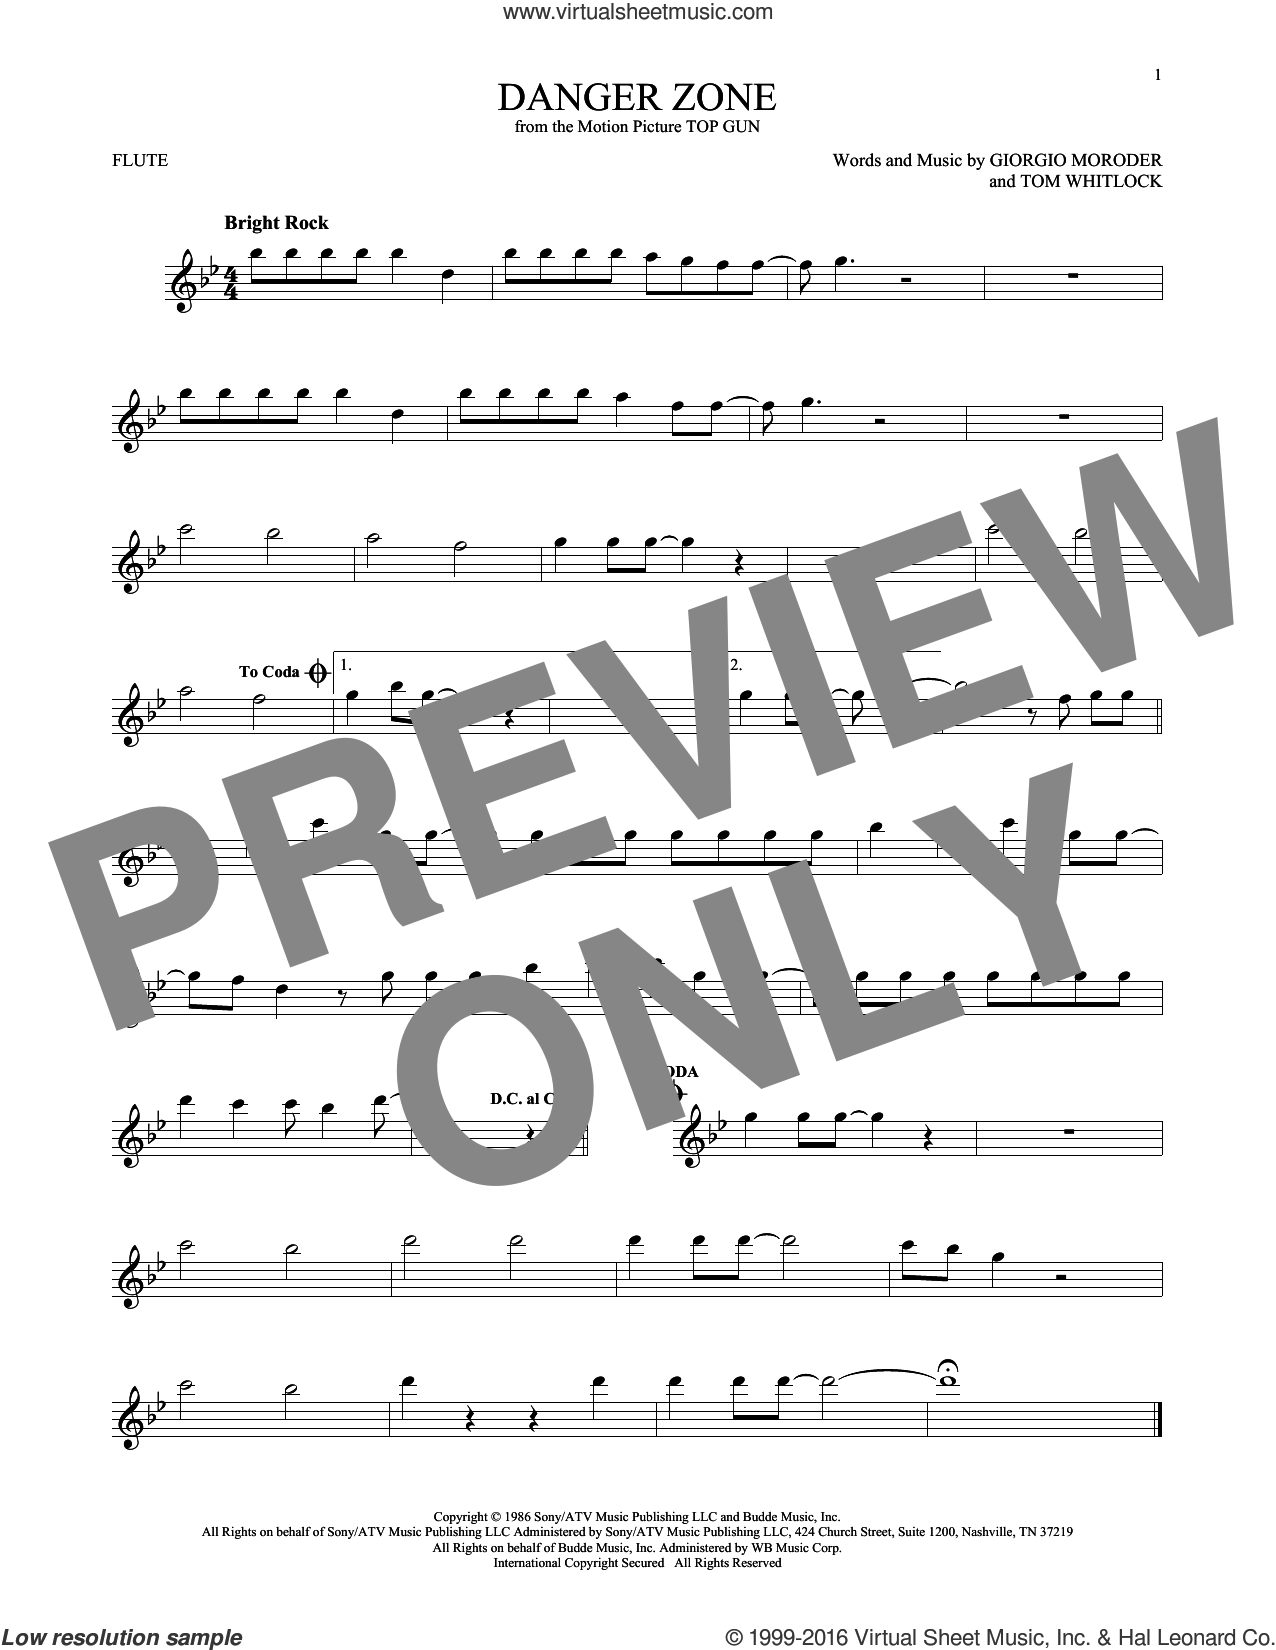 Danger Zone sheet music for flute solo by Kenny Loggins, Giorgio Moroder and Tom Whitlock, intermediate skill level